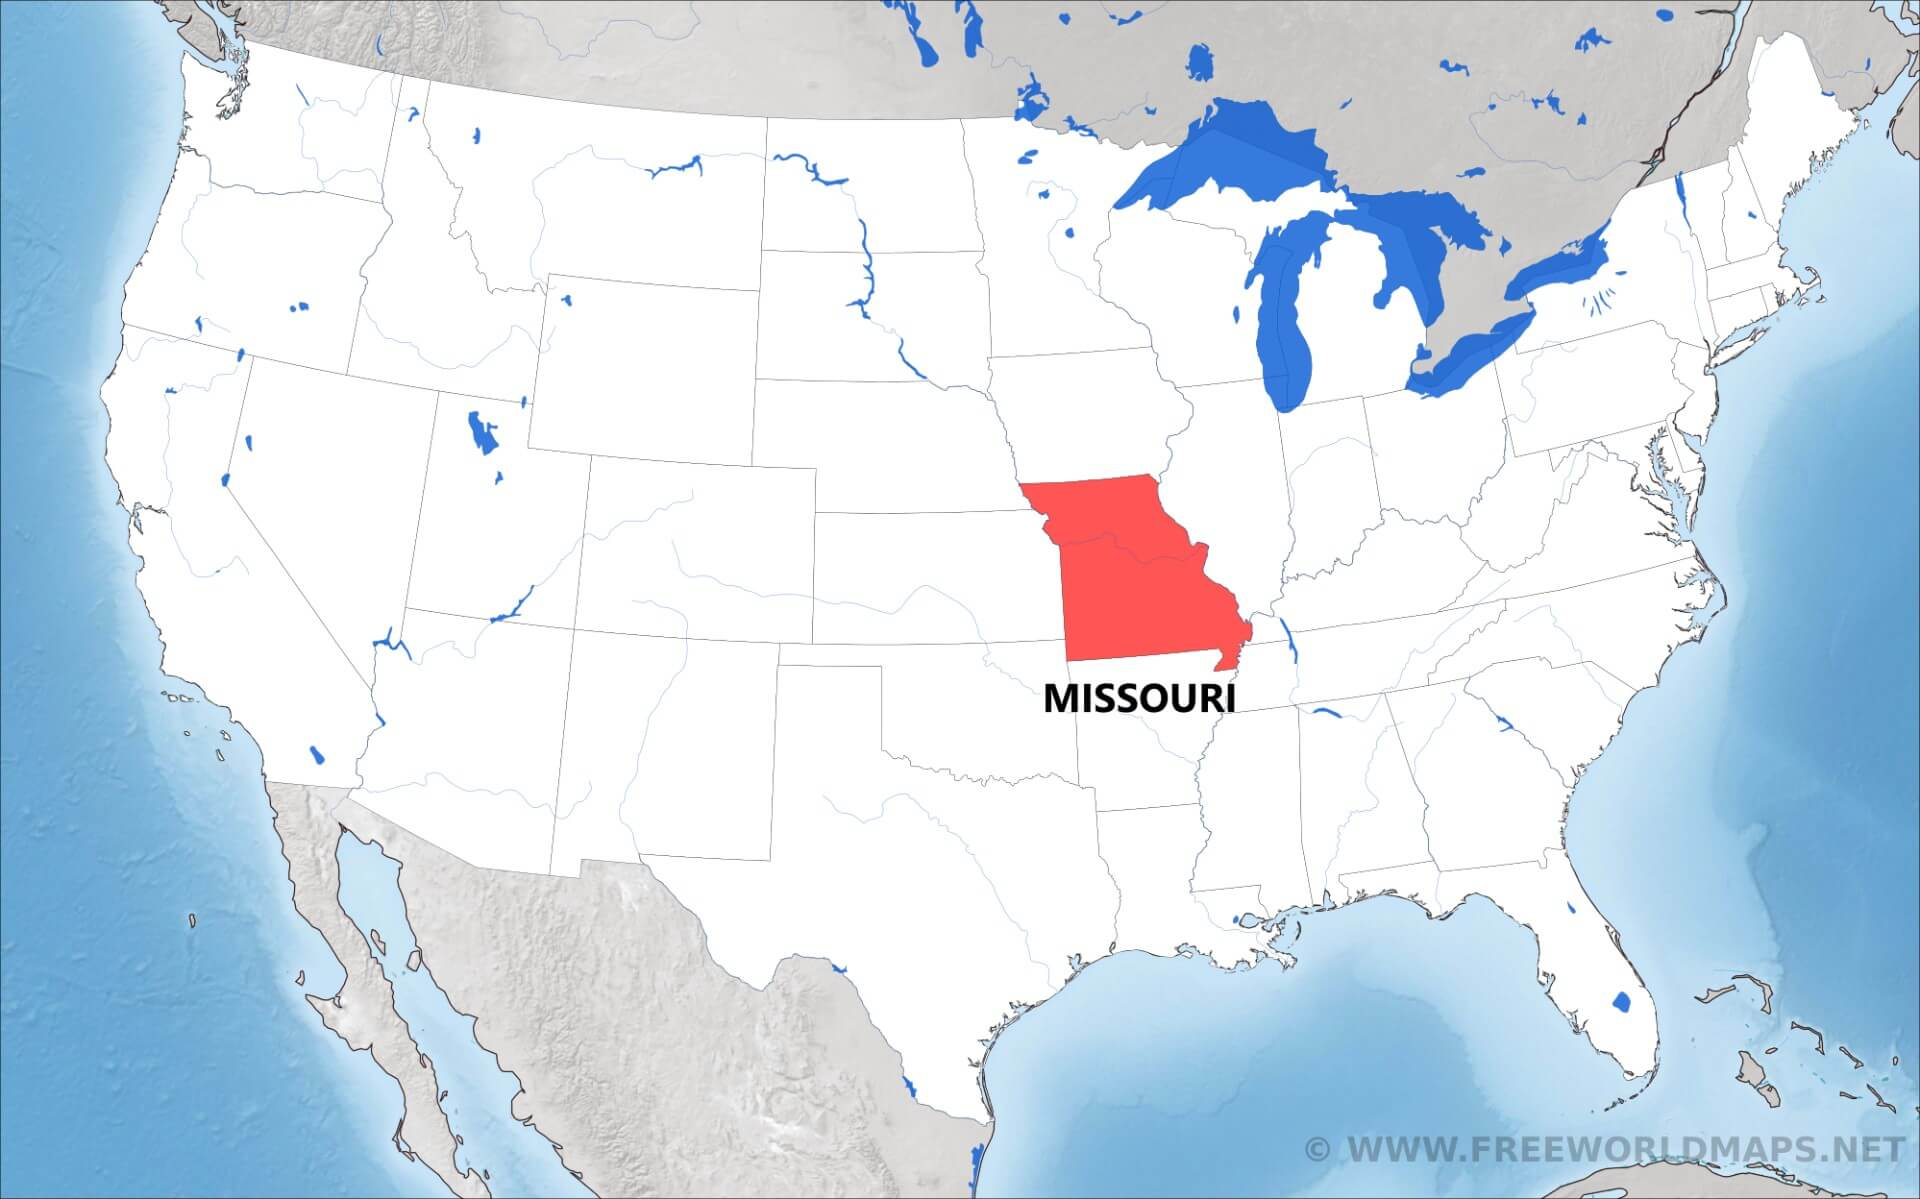 Where is Missouri located on the map?